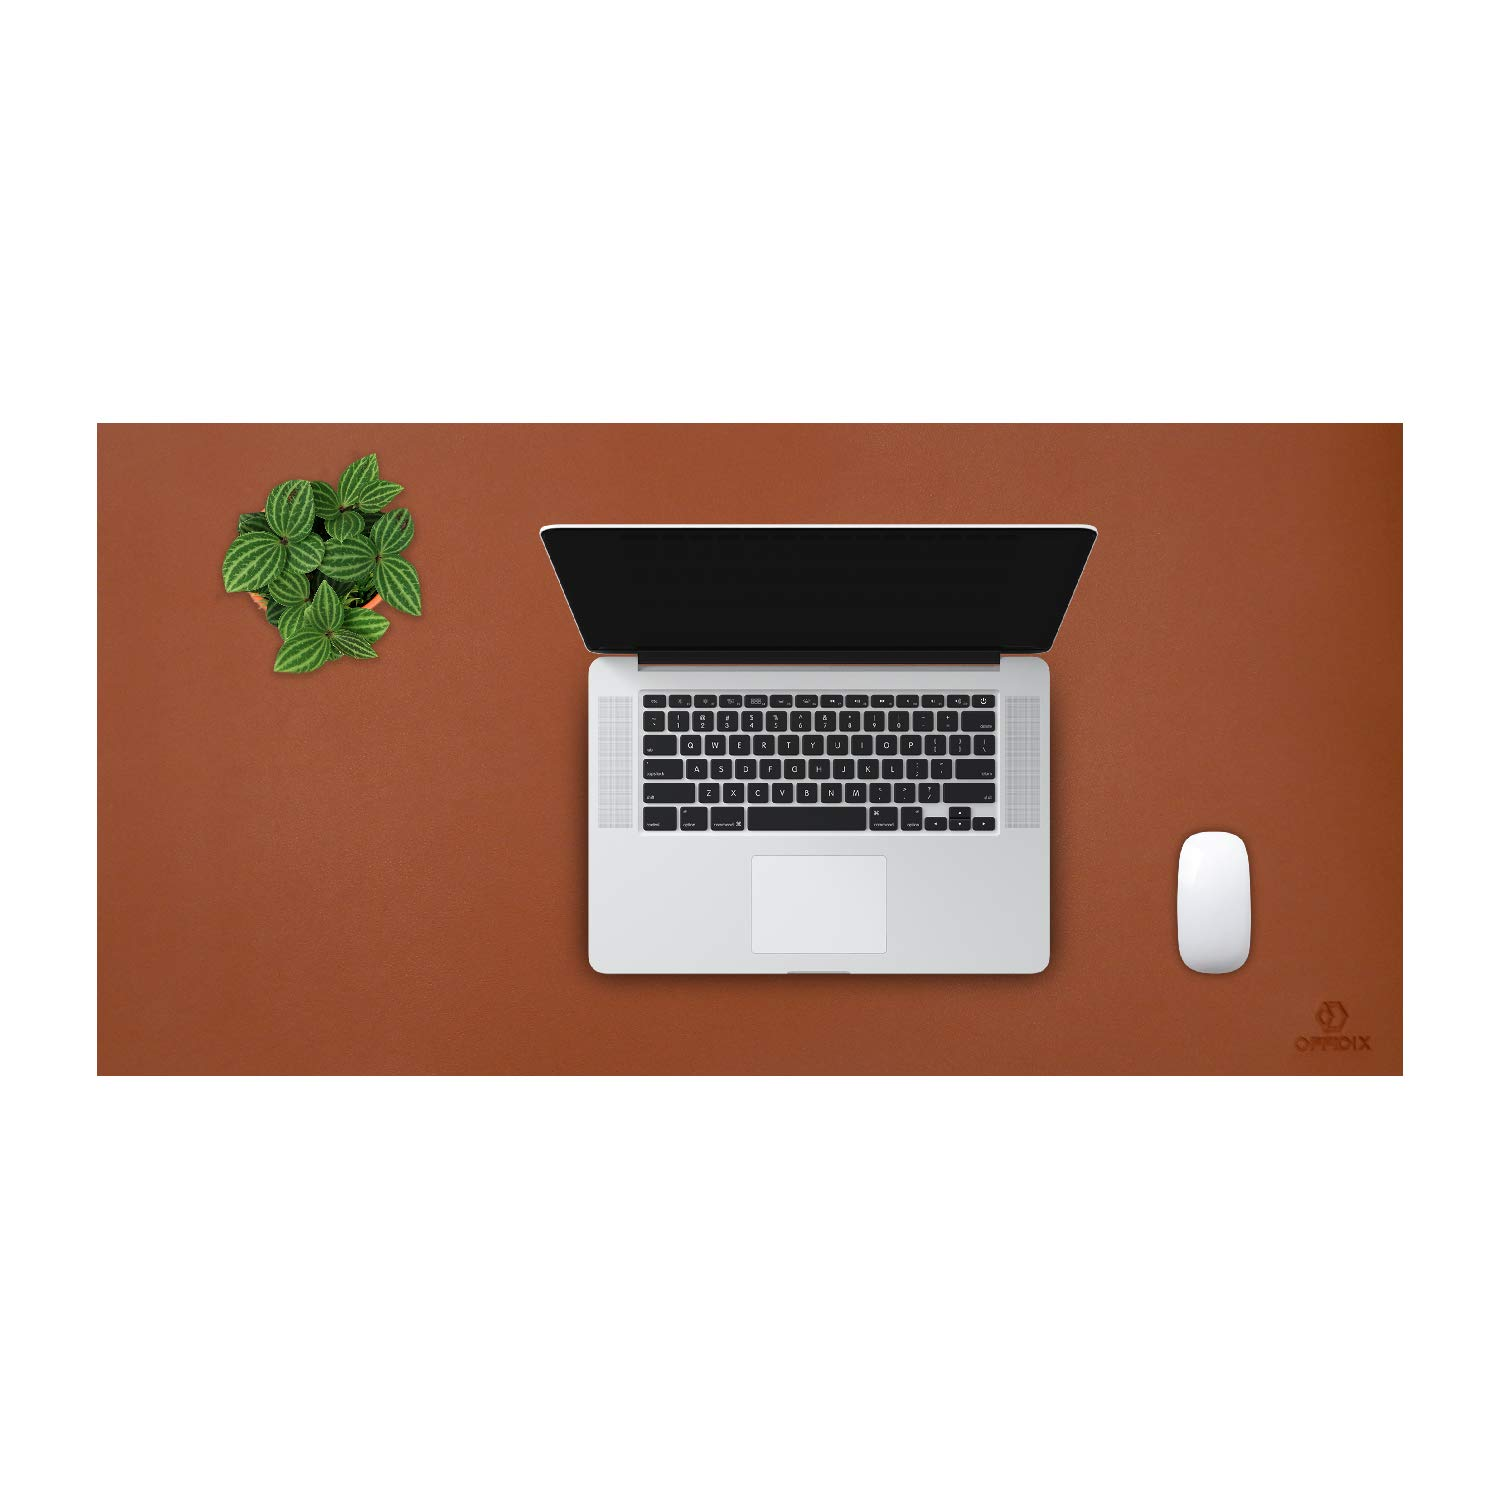 OFFIDIX Office Desk Mat,Desktop PU Leather Desk Pad Non-Slip Leather Protective Desk Pad Laptop Mat Gaming Writing Mat for Laptop PC Keyboard Office Home (Brown, 24''x12'')